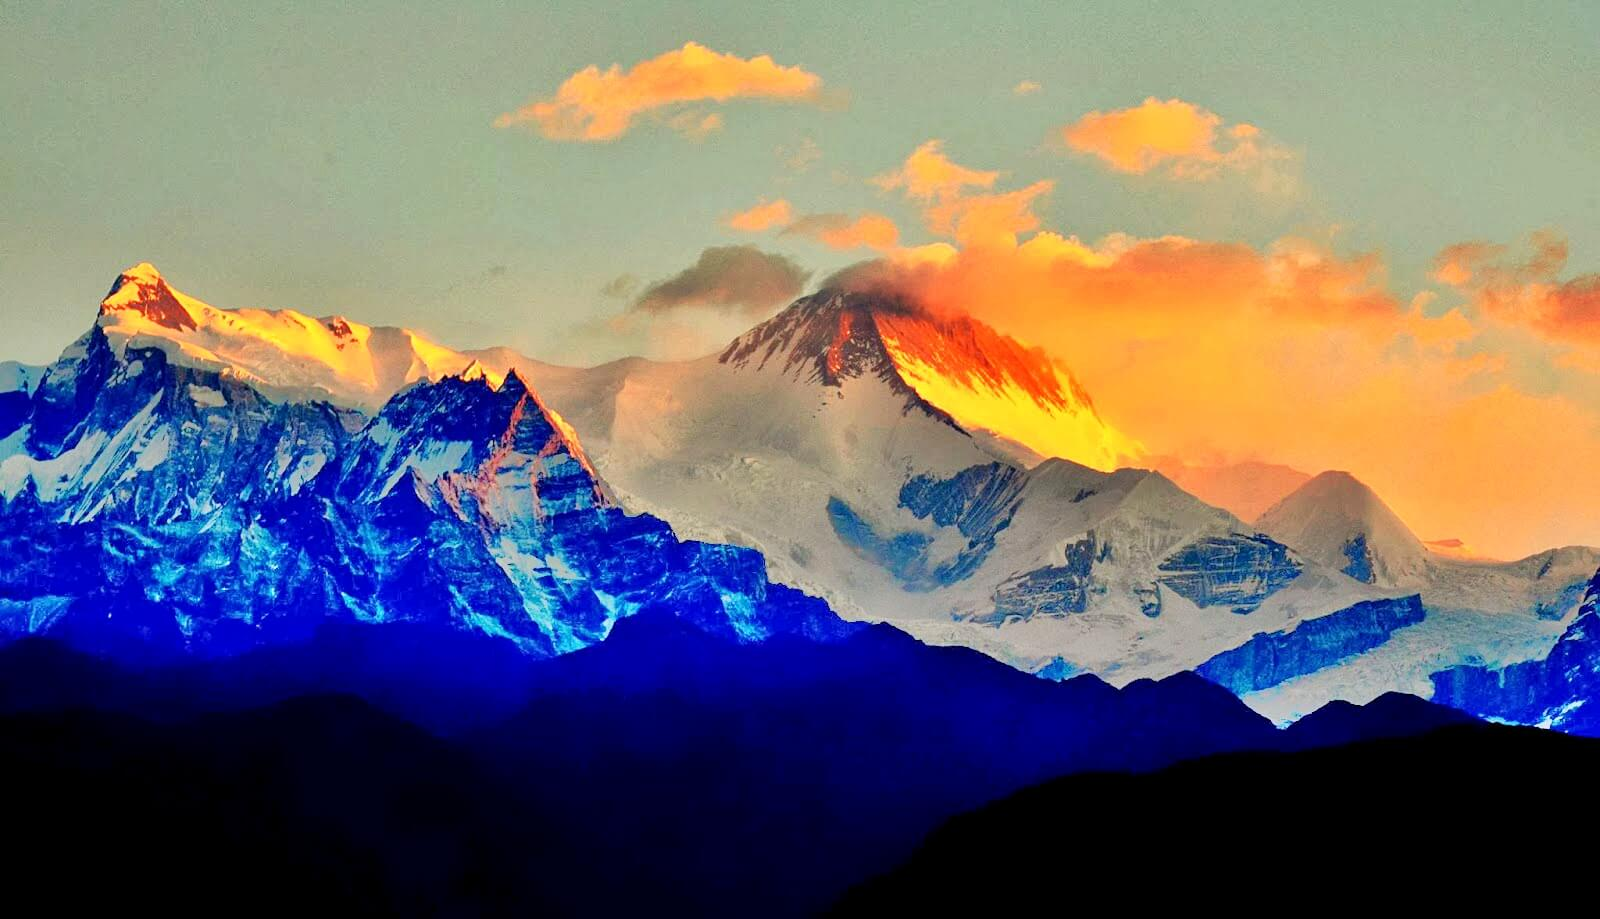 Sunrise view of Himalaya range Annapurna